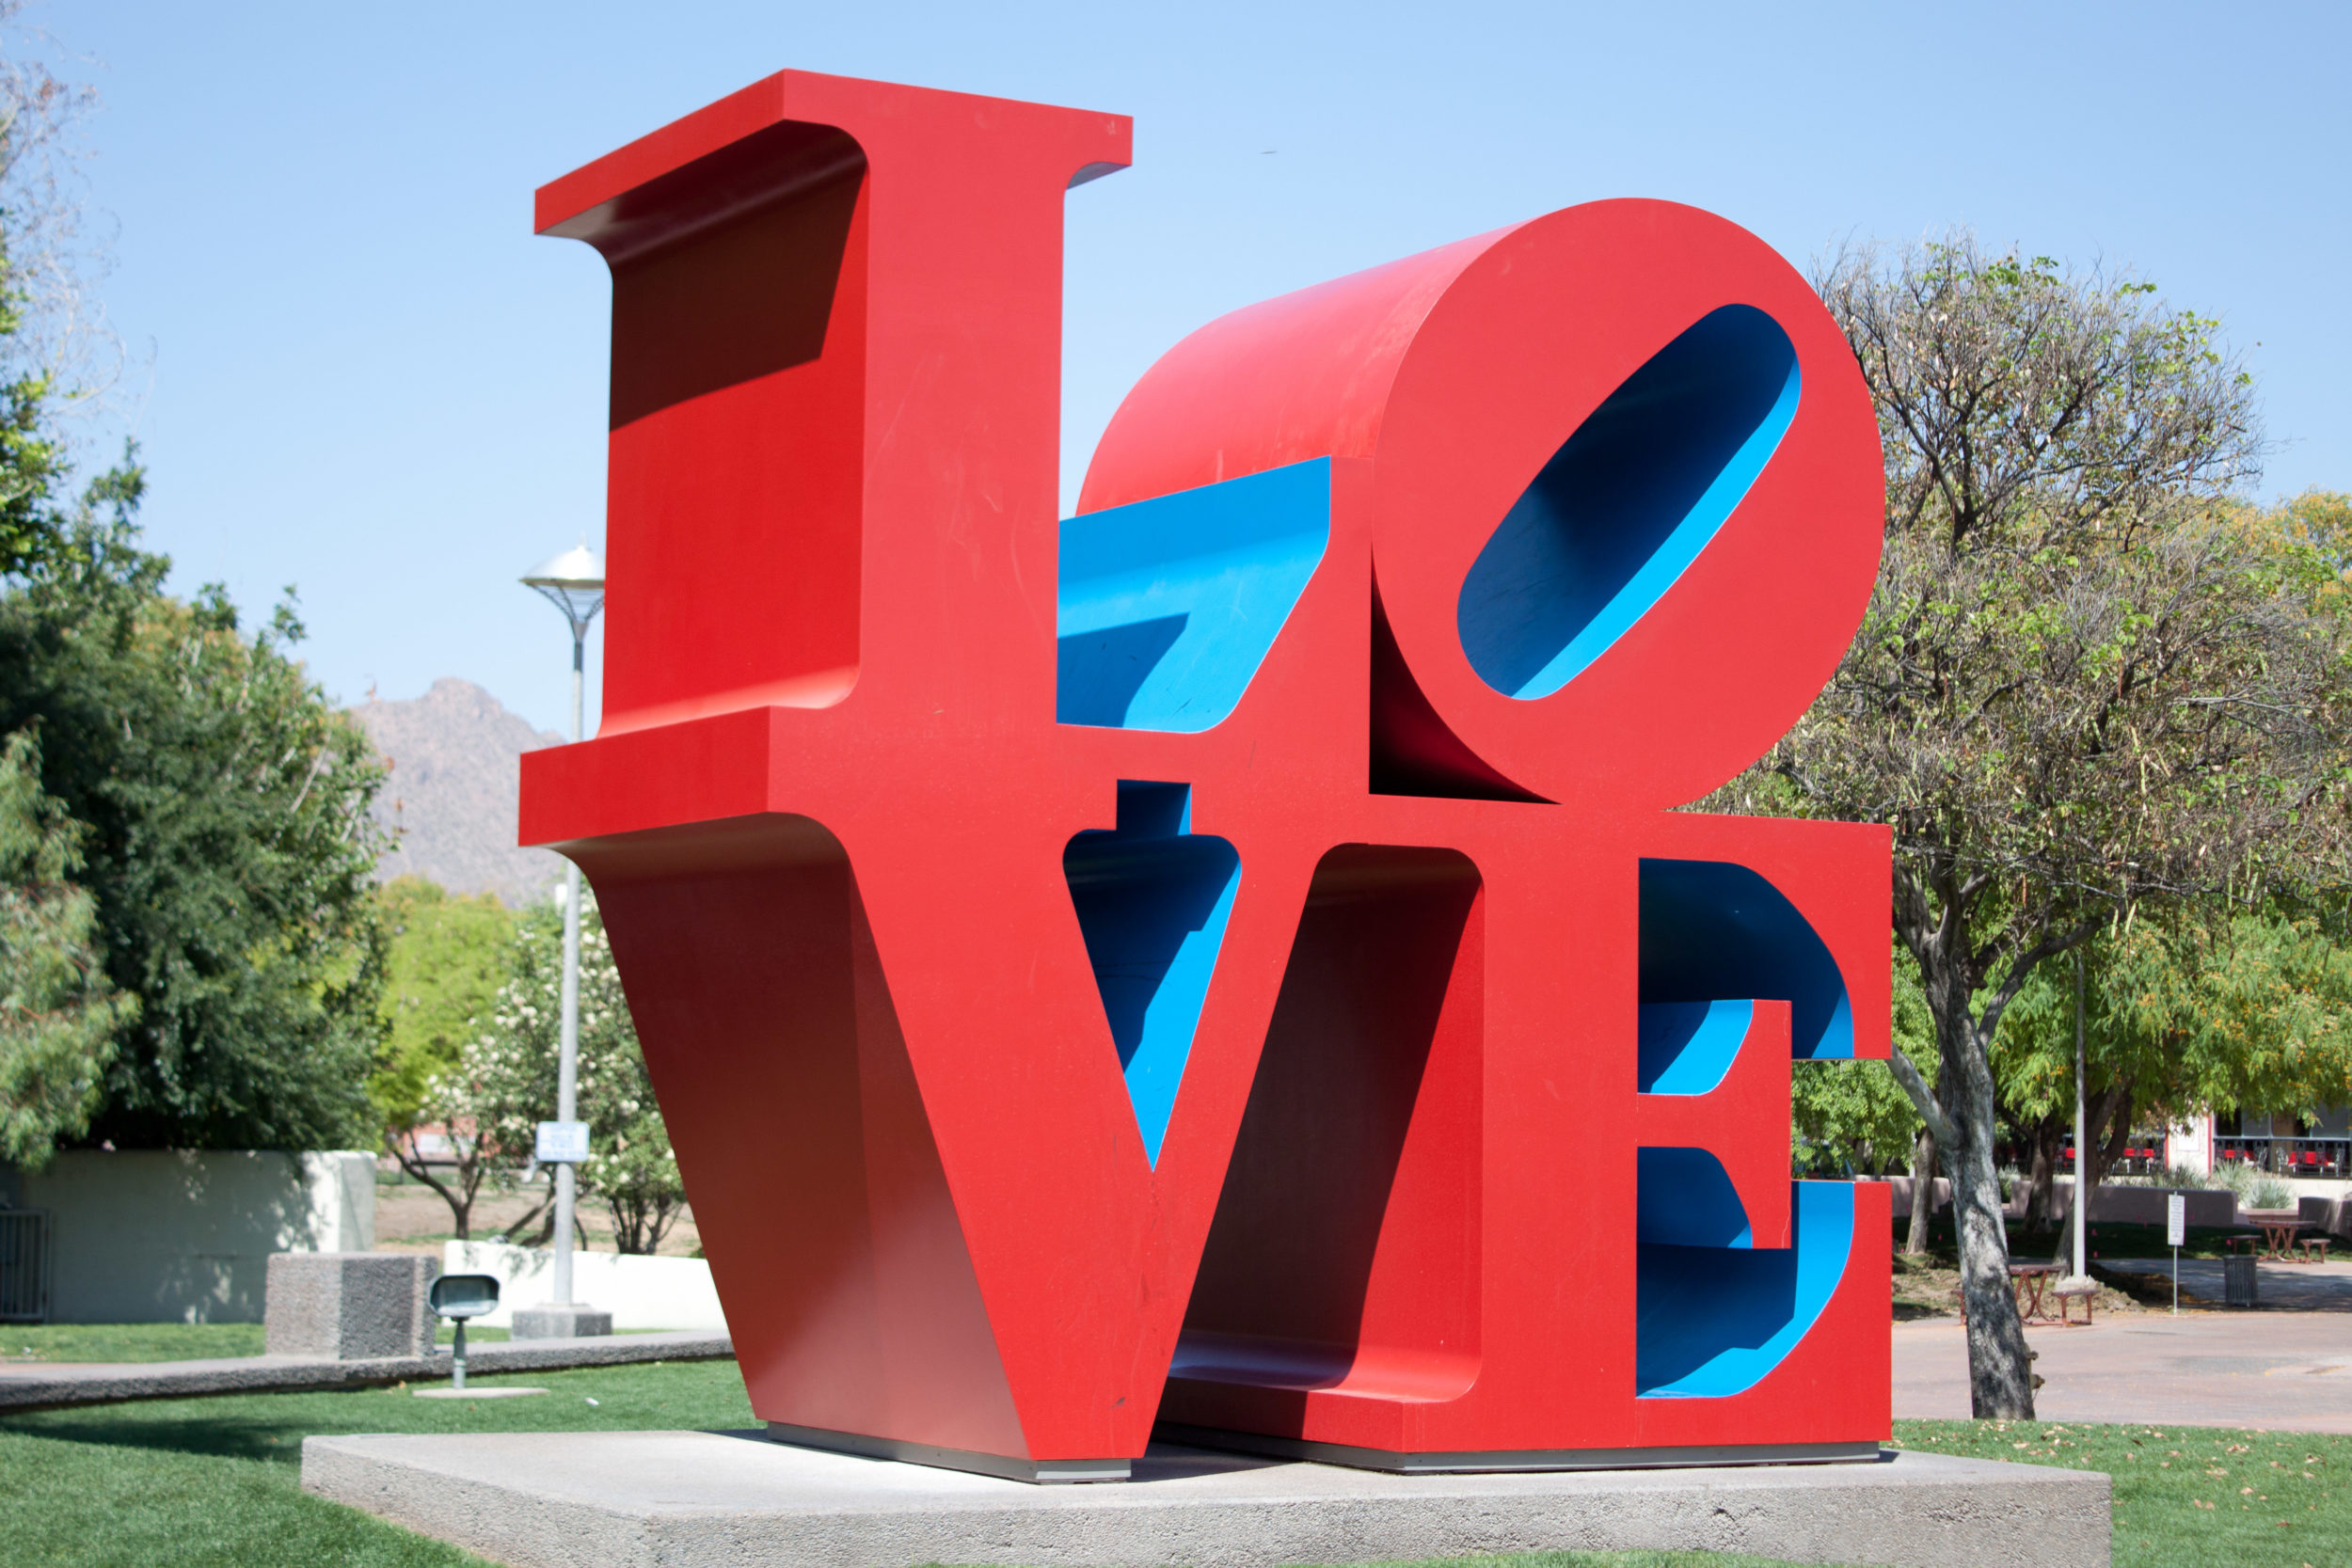 "A sculpture of the famous ""LOVE"" logo by Robert Indiana, where the L and O are stacked on top of the V and E, and the O is slanted sideways. The sculpture is displayed outside with trees and a street visible in the background."